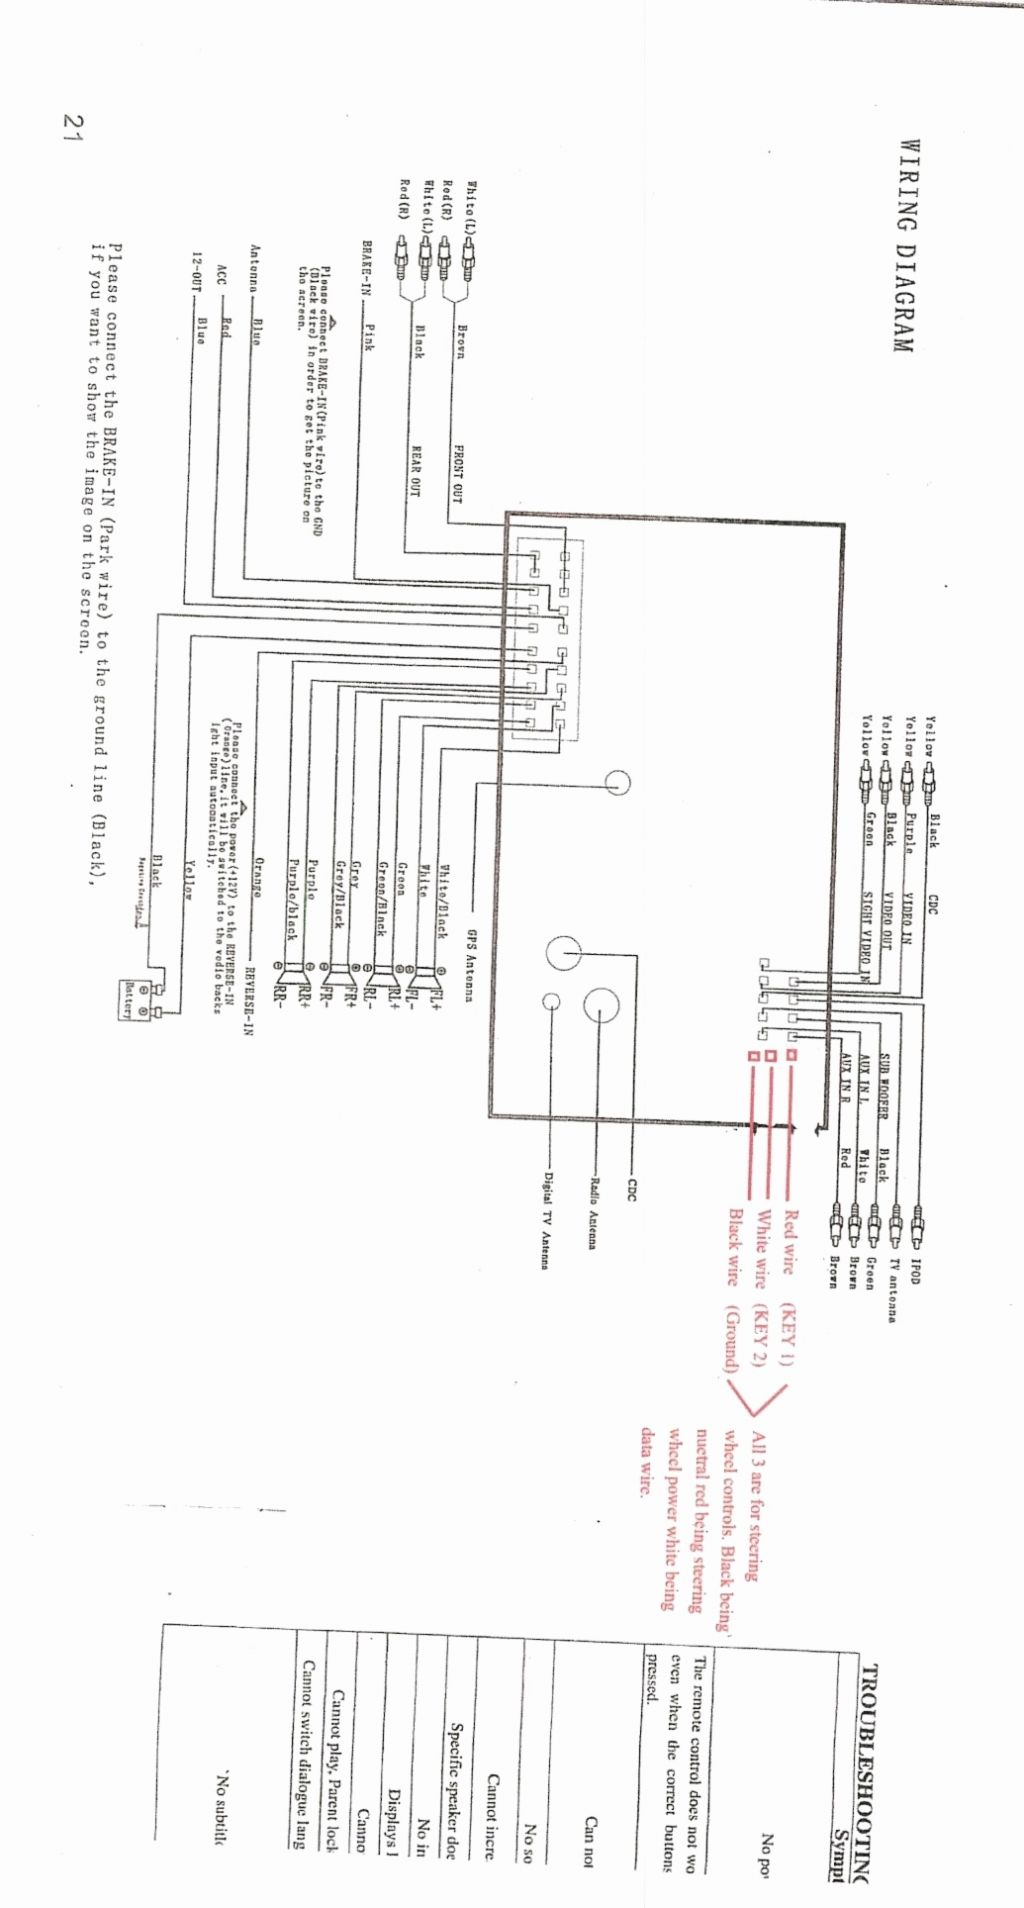 axxess gmos lan 02 wiring diagram download